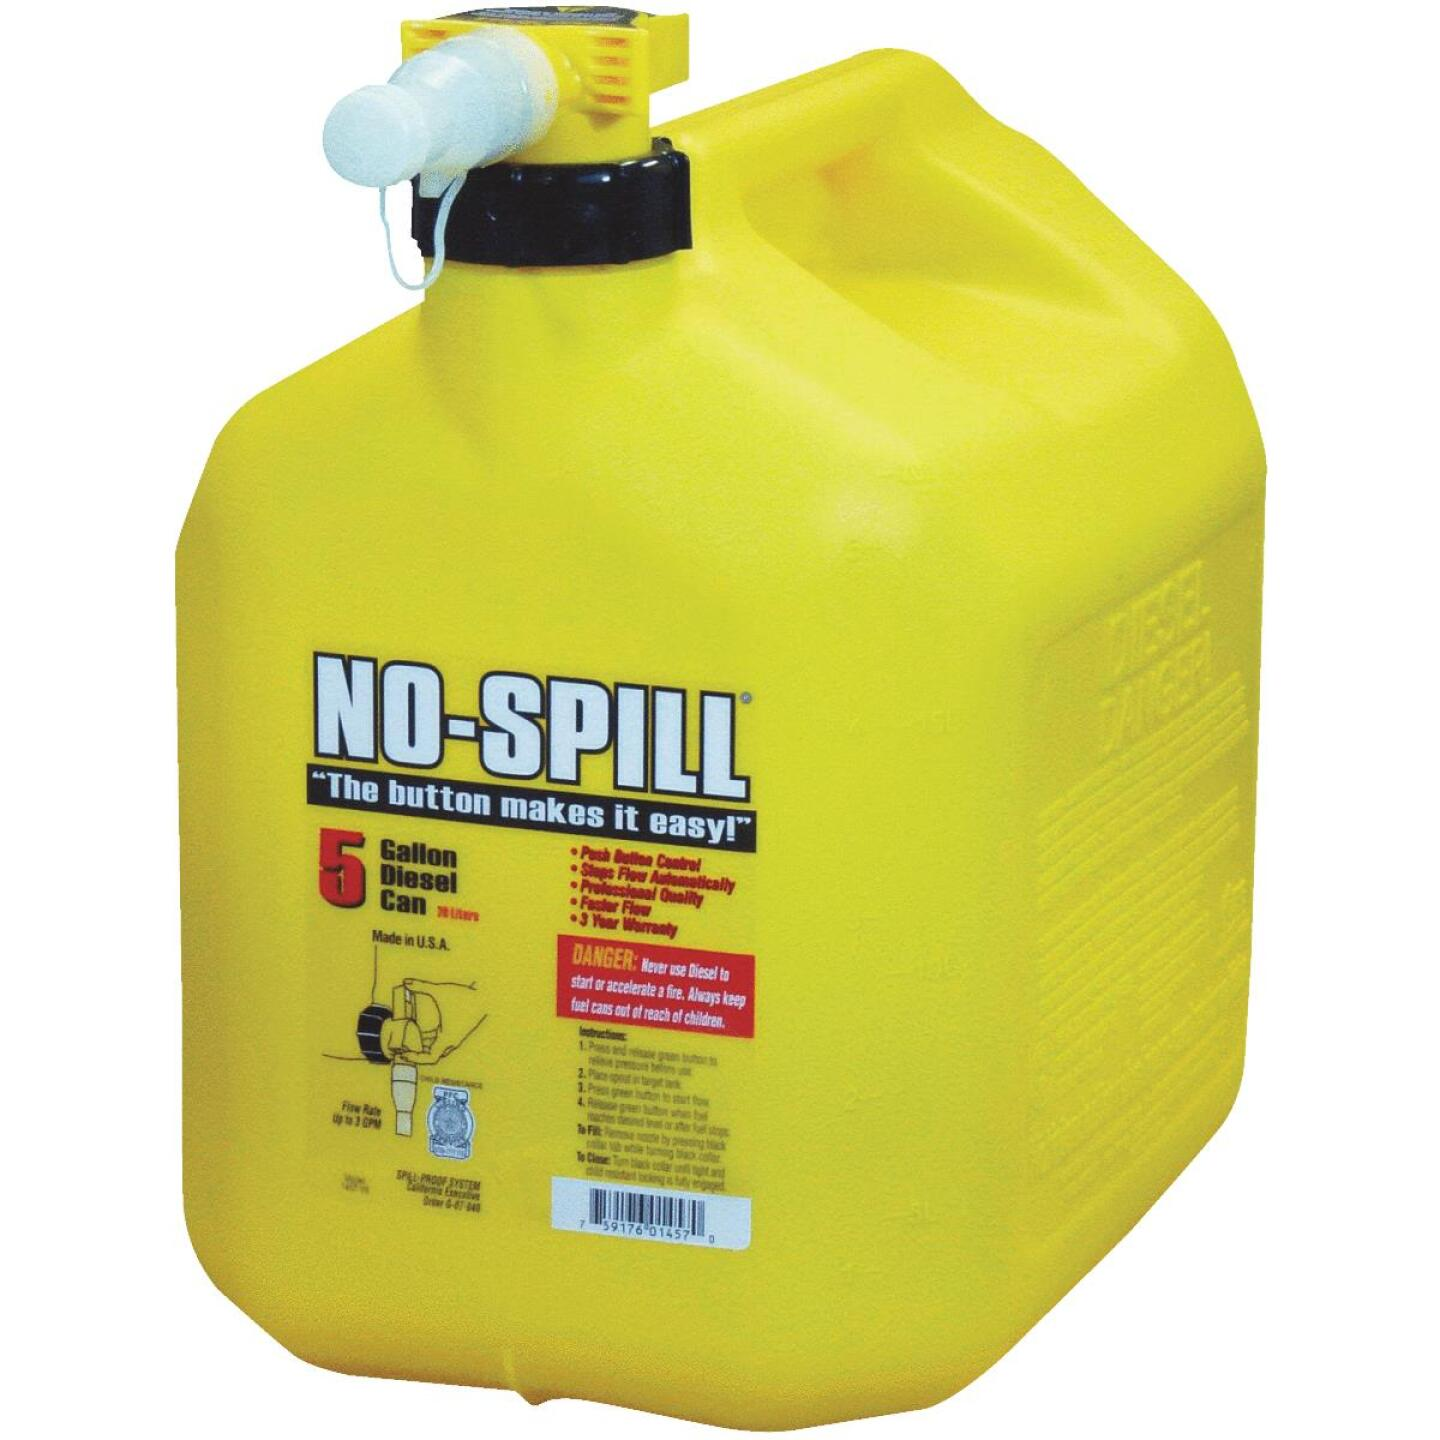 No-Spill 5 Gal. Plastic Diesel Fuel Can, Yellow Image 1